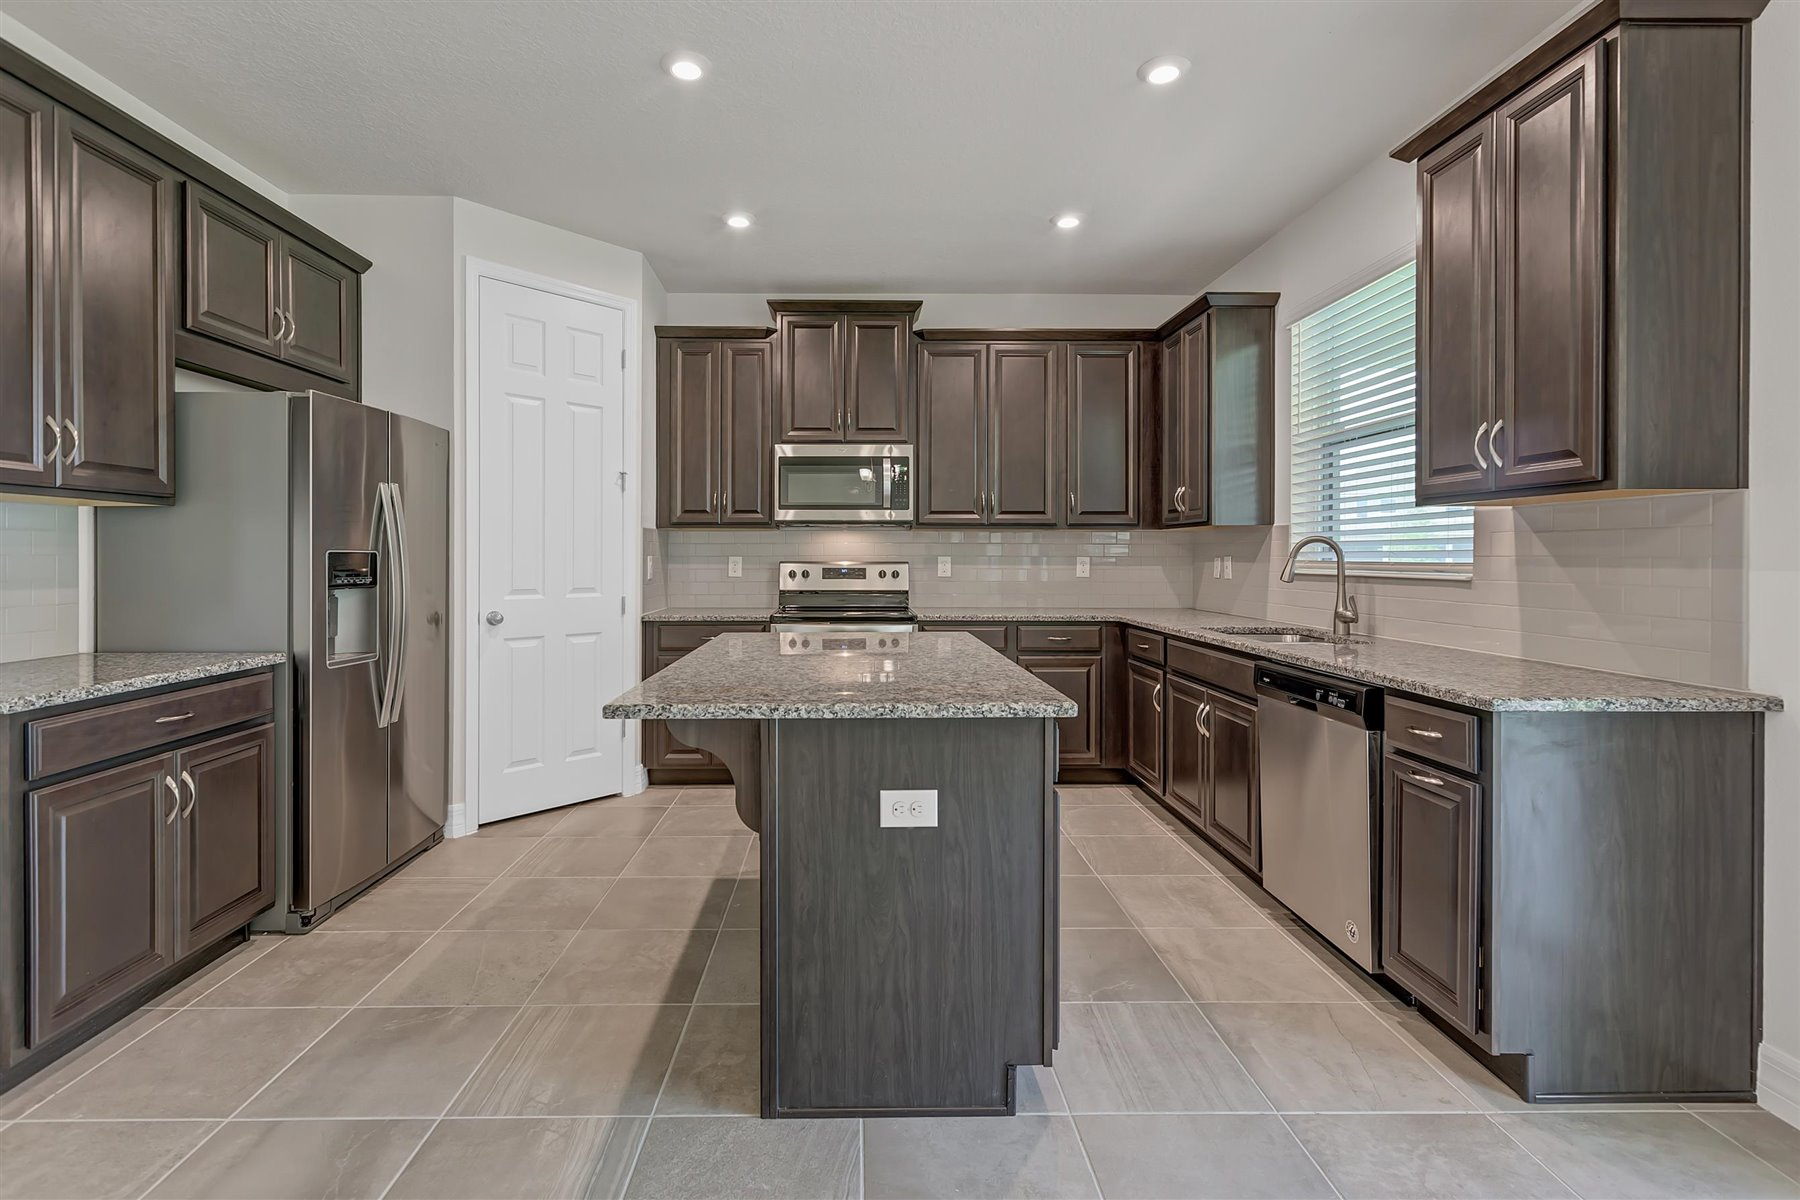 Winthrop Plan Kitchen at Tapestry in Kissimmee Florida by Mattamy Homes